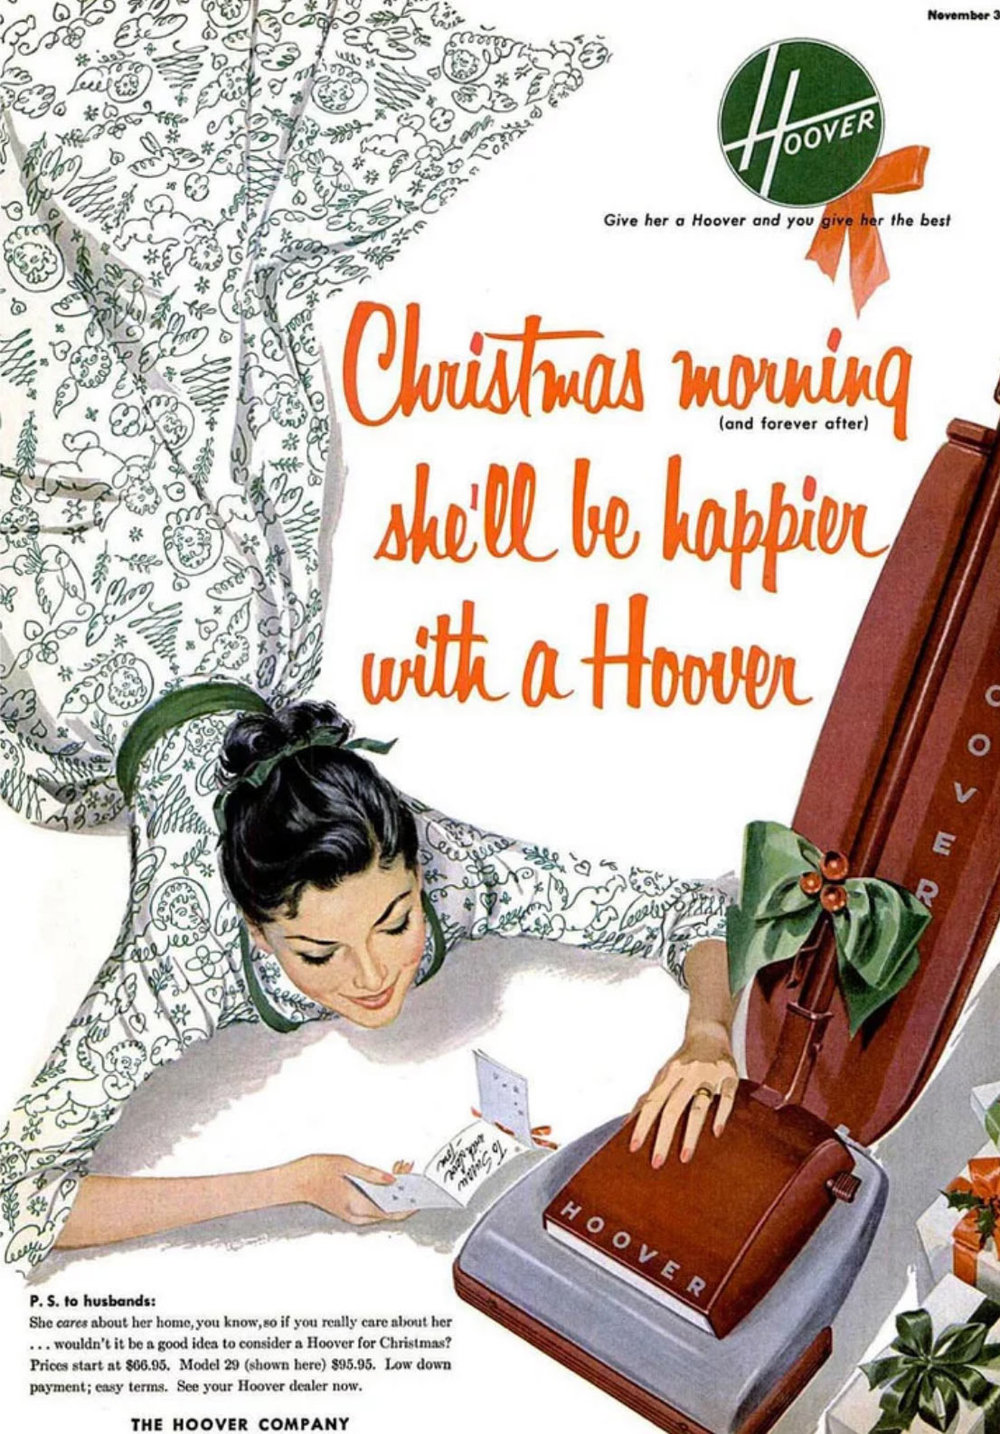 happier-with-a-hoover.jpg